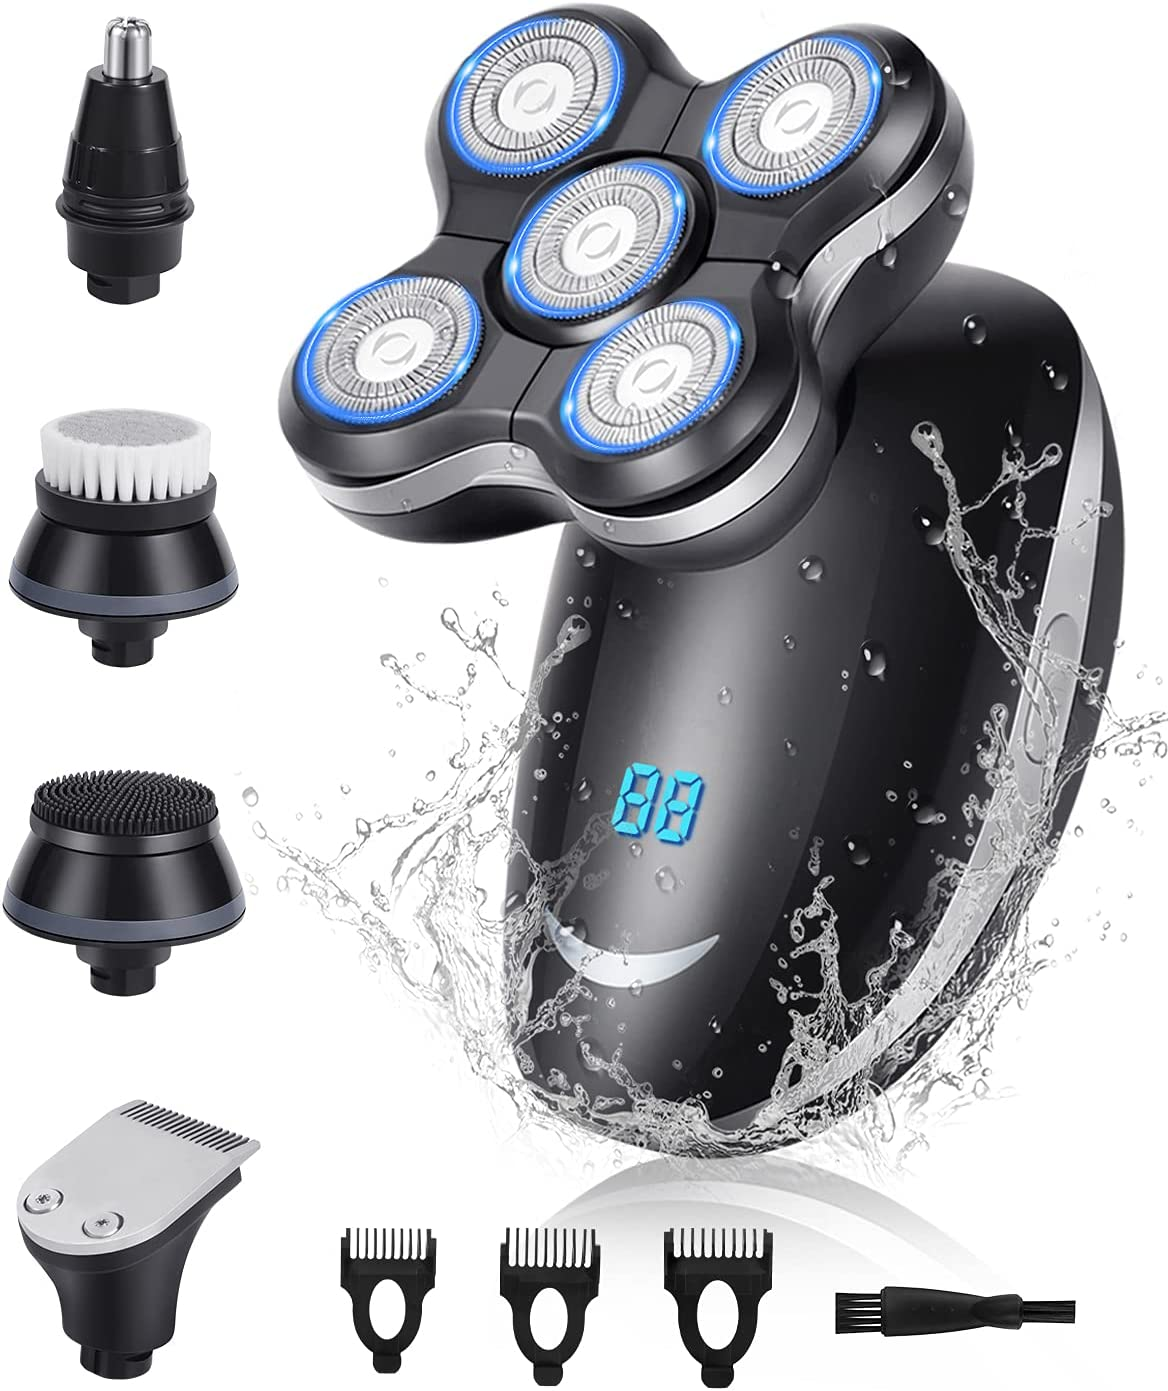 Head Shavers for Bald Men 5 Razor in 1 Gifts Electric Waterpr Spring new work one after another